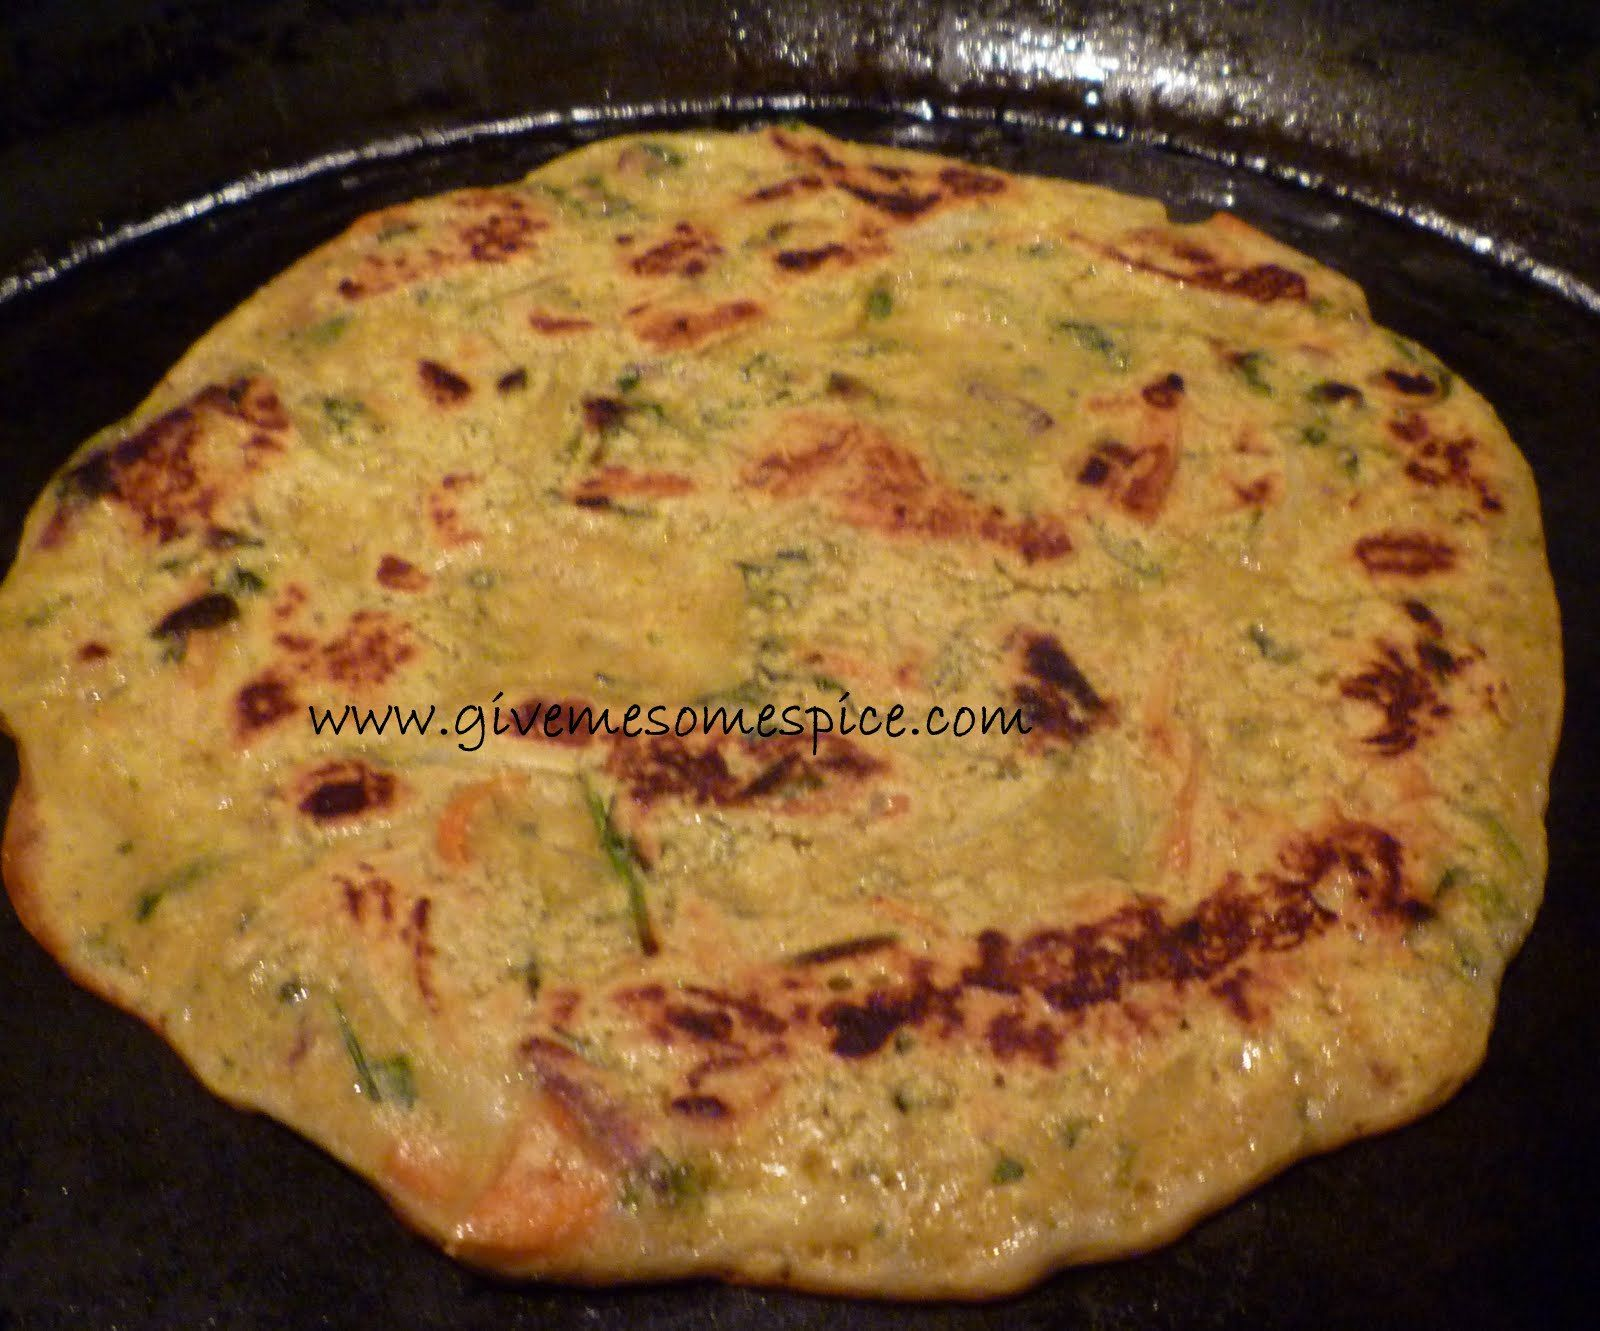 Savoury pancakes or gujarati pudlas made with vegetables and savoury pancakes or gujarati pudlas made with vegetables and chickpea flour authentic vegetarian recipes traditional indian food step by step recipes forumfinder Gallery